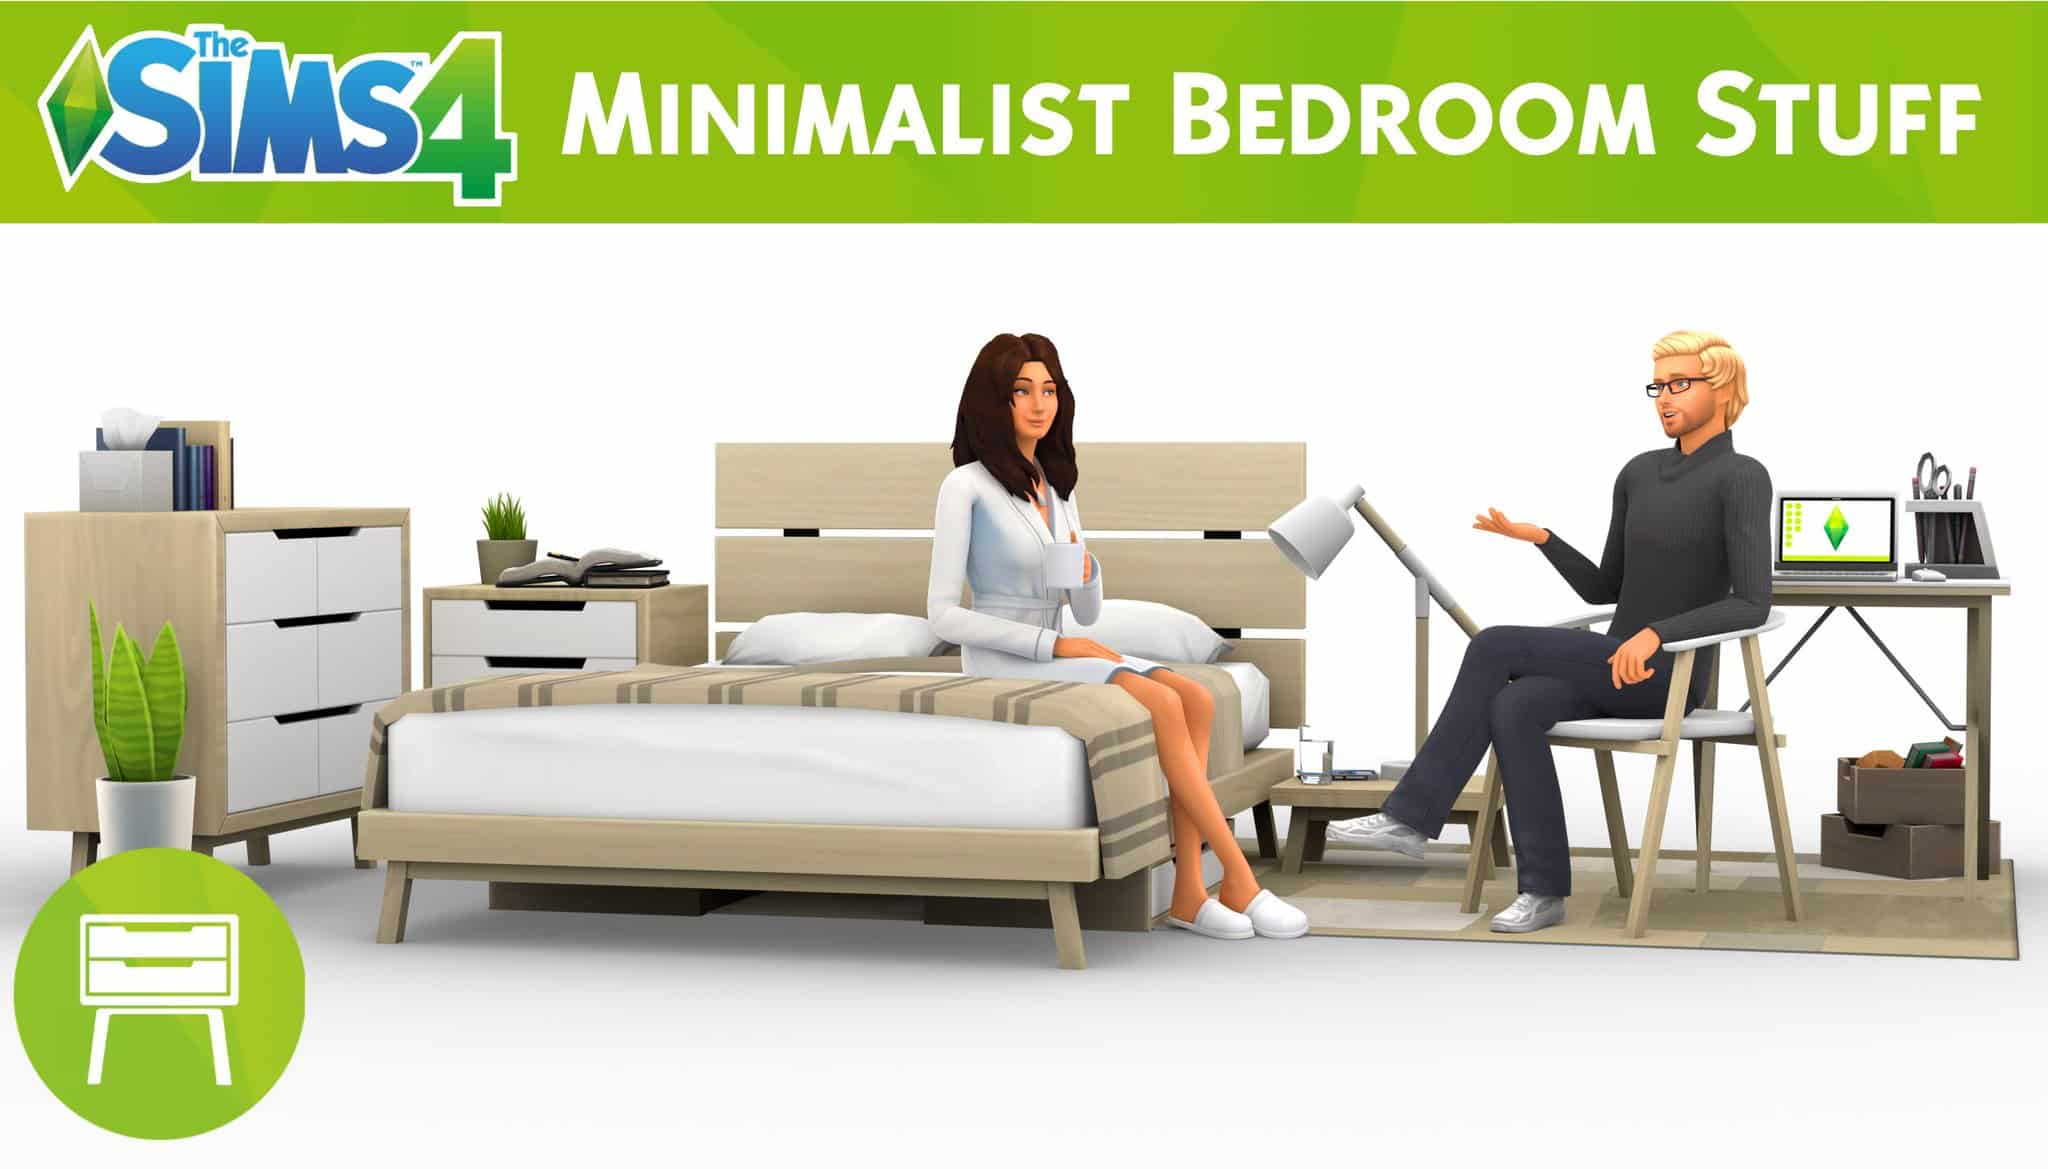 The Sims 4 Minimalist Bedroom Fanmade Custom Stuff Pack Now Available